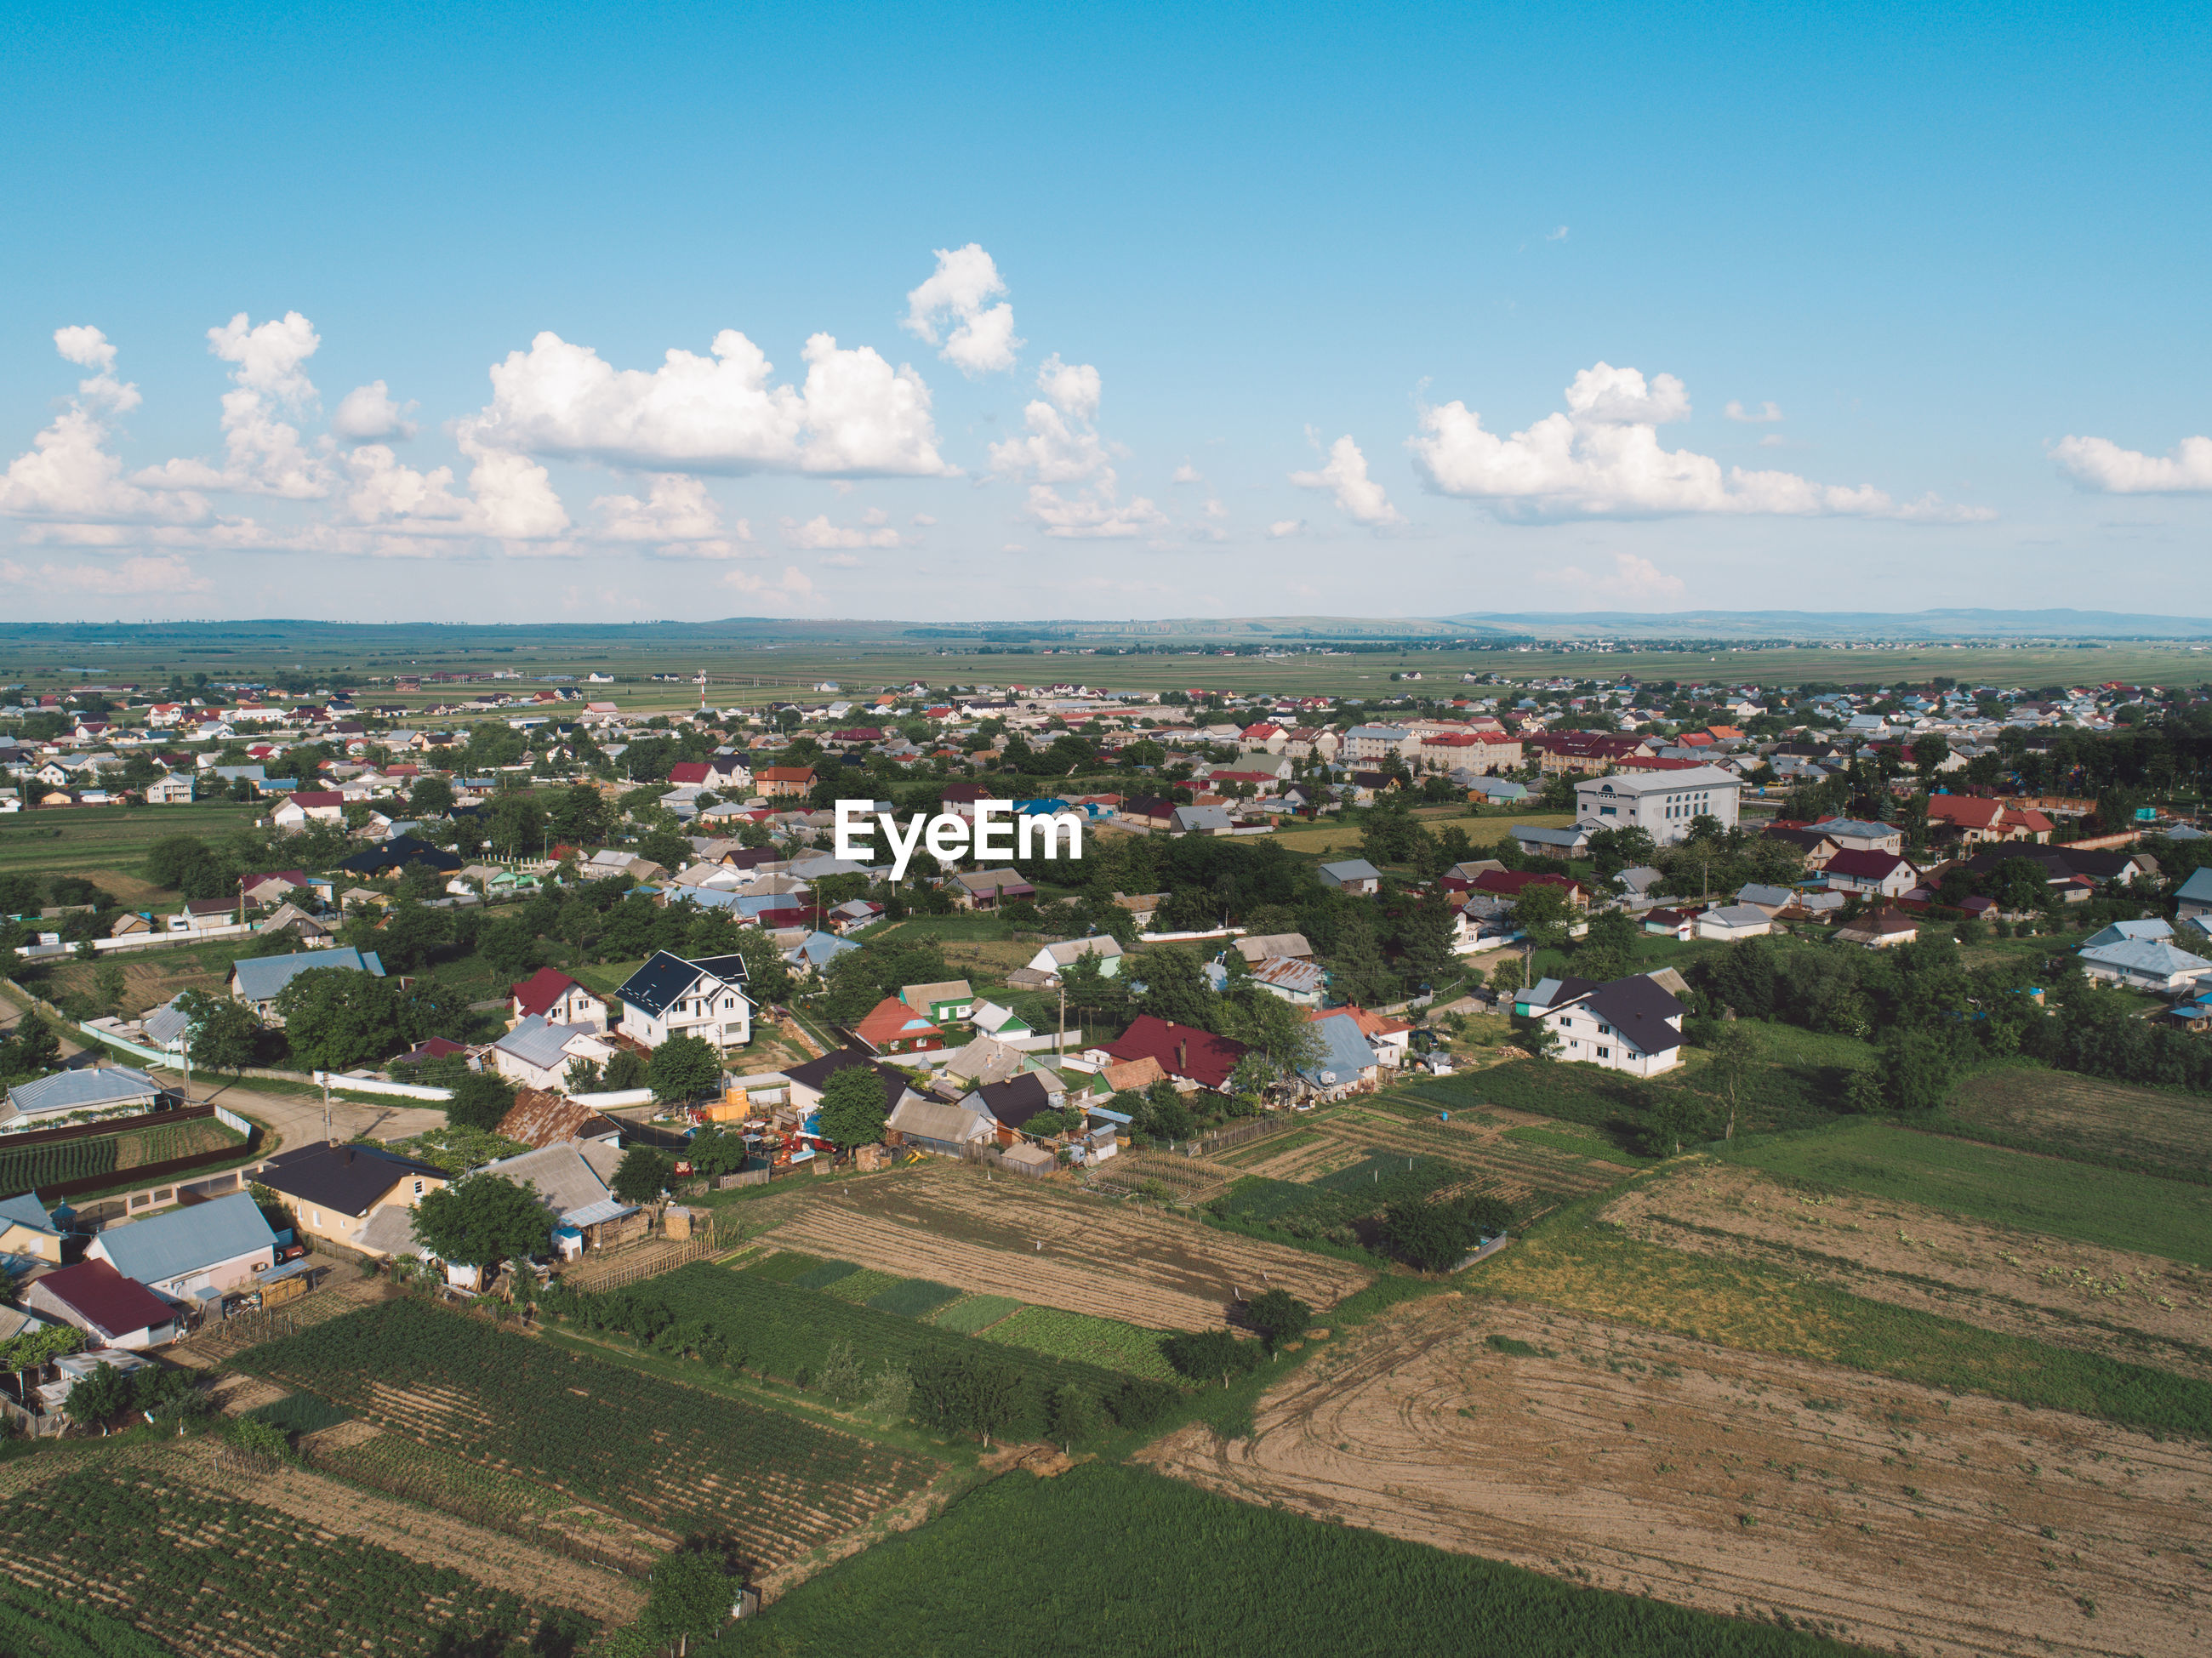 HIGH ANGLE VIEW OF AGRICULTURAL LANDSCAPE AGAINST SKY